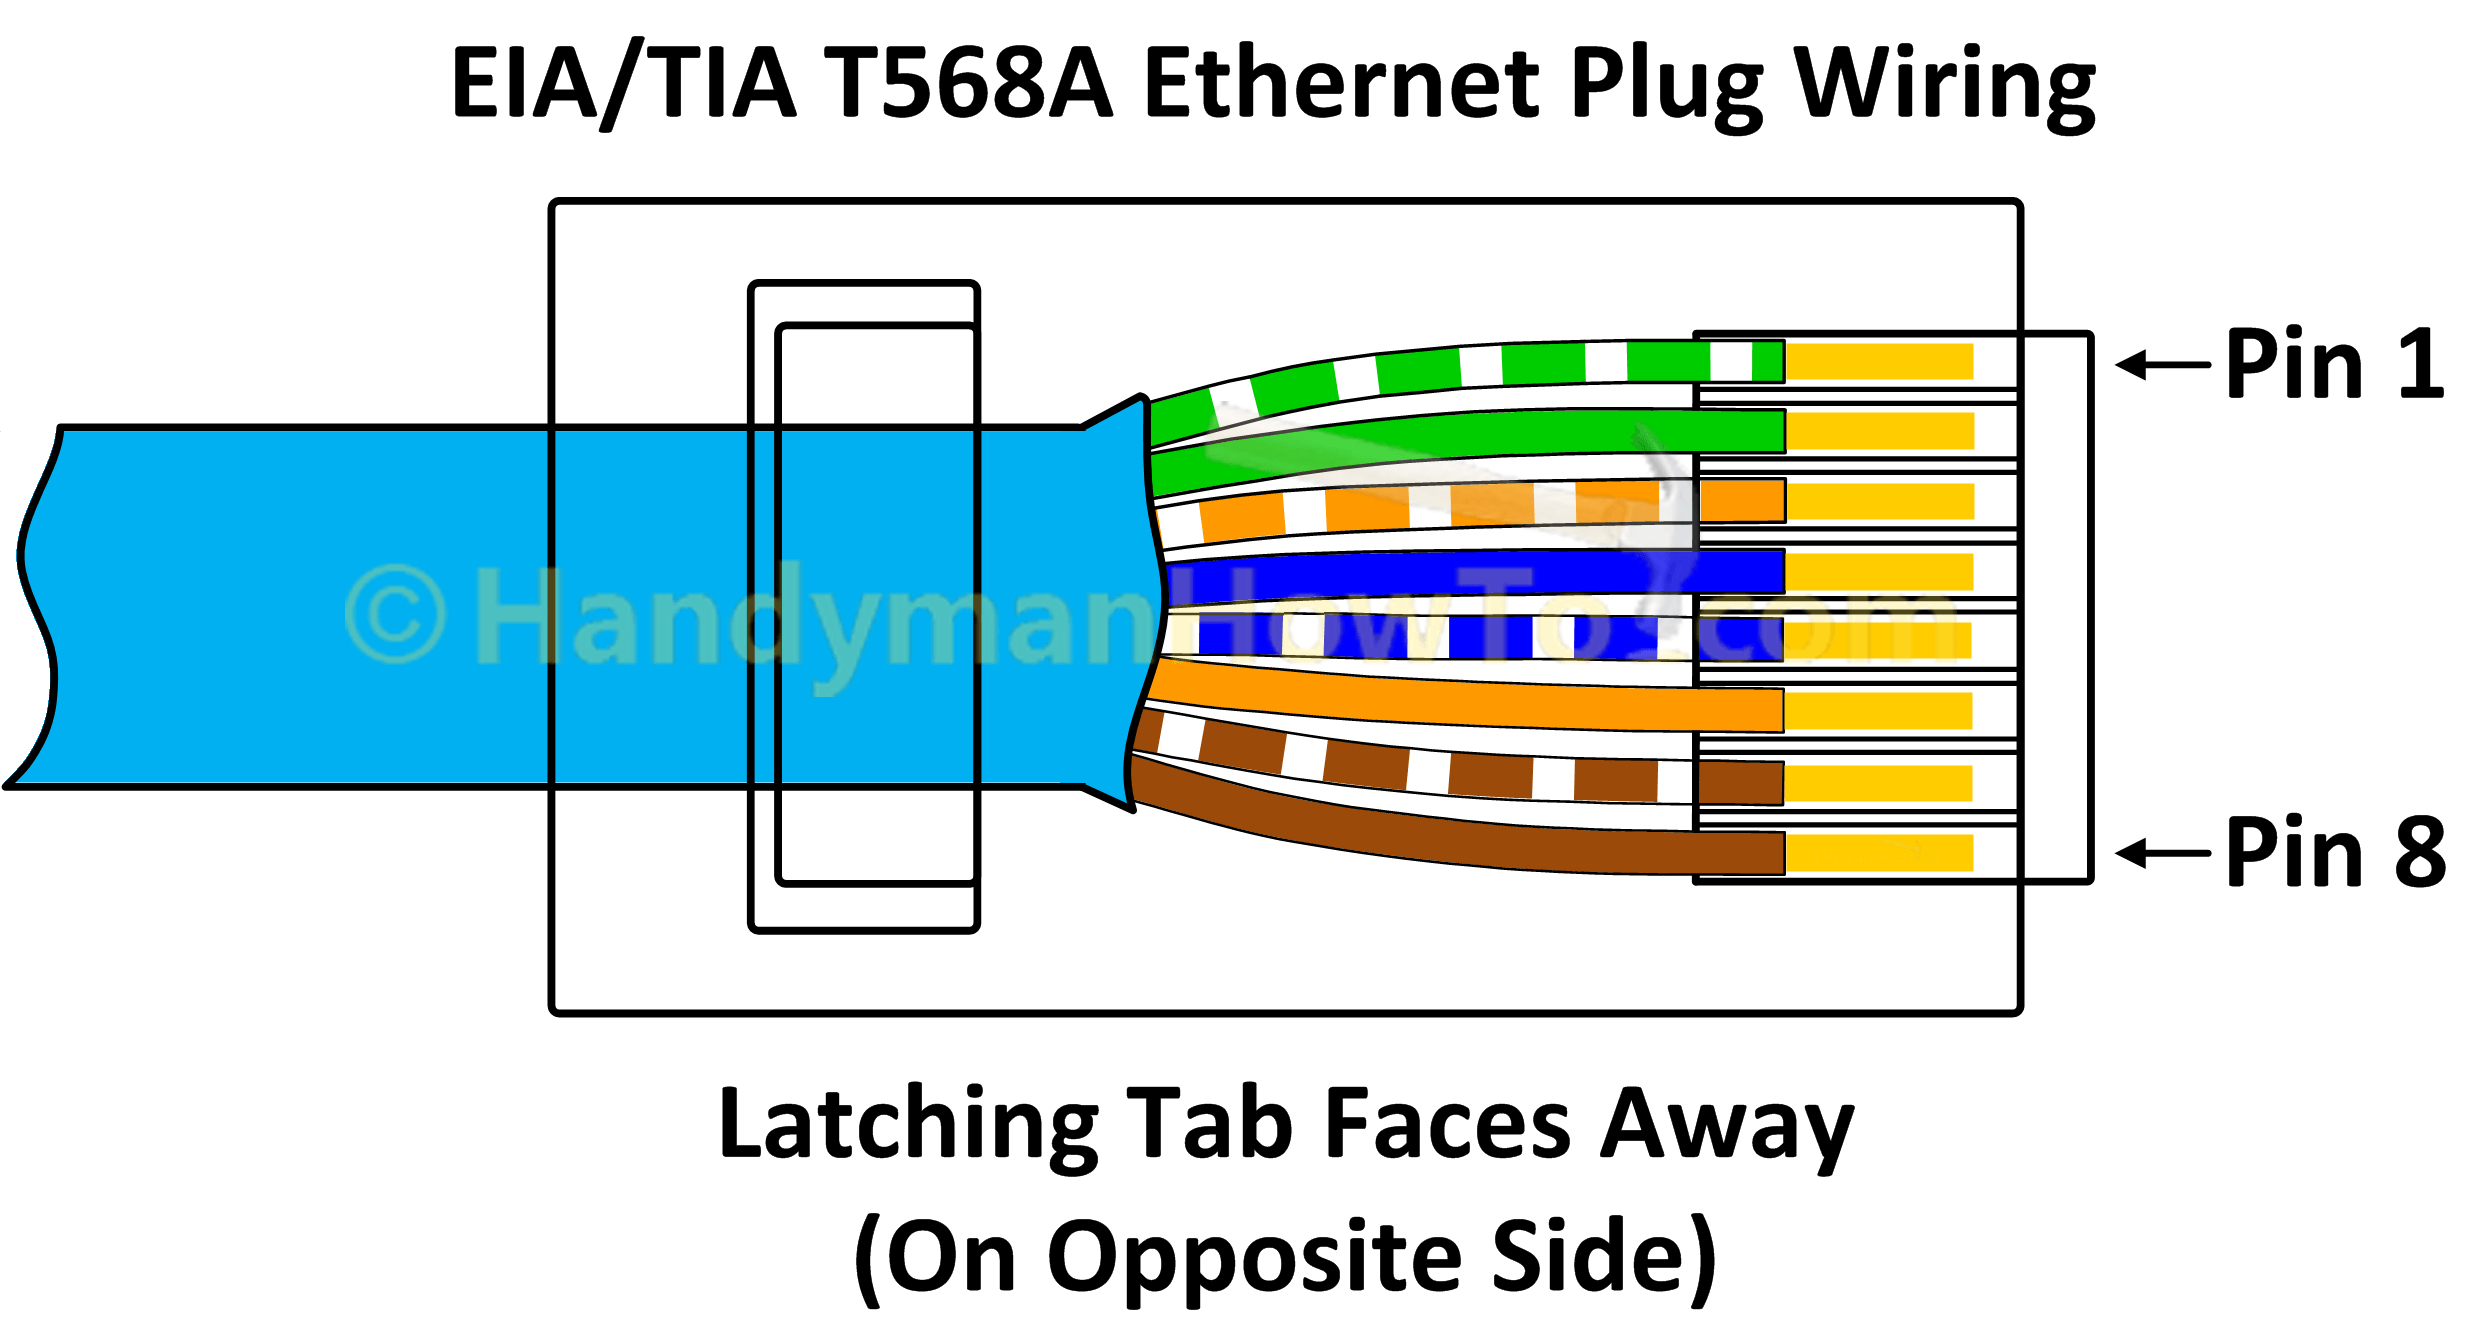 Cat 6 Ethernet Cable Wiring - Wiring Diagrams Hubs - Network Cable Wiring Diagram